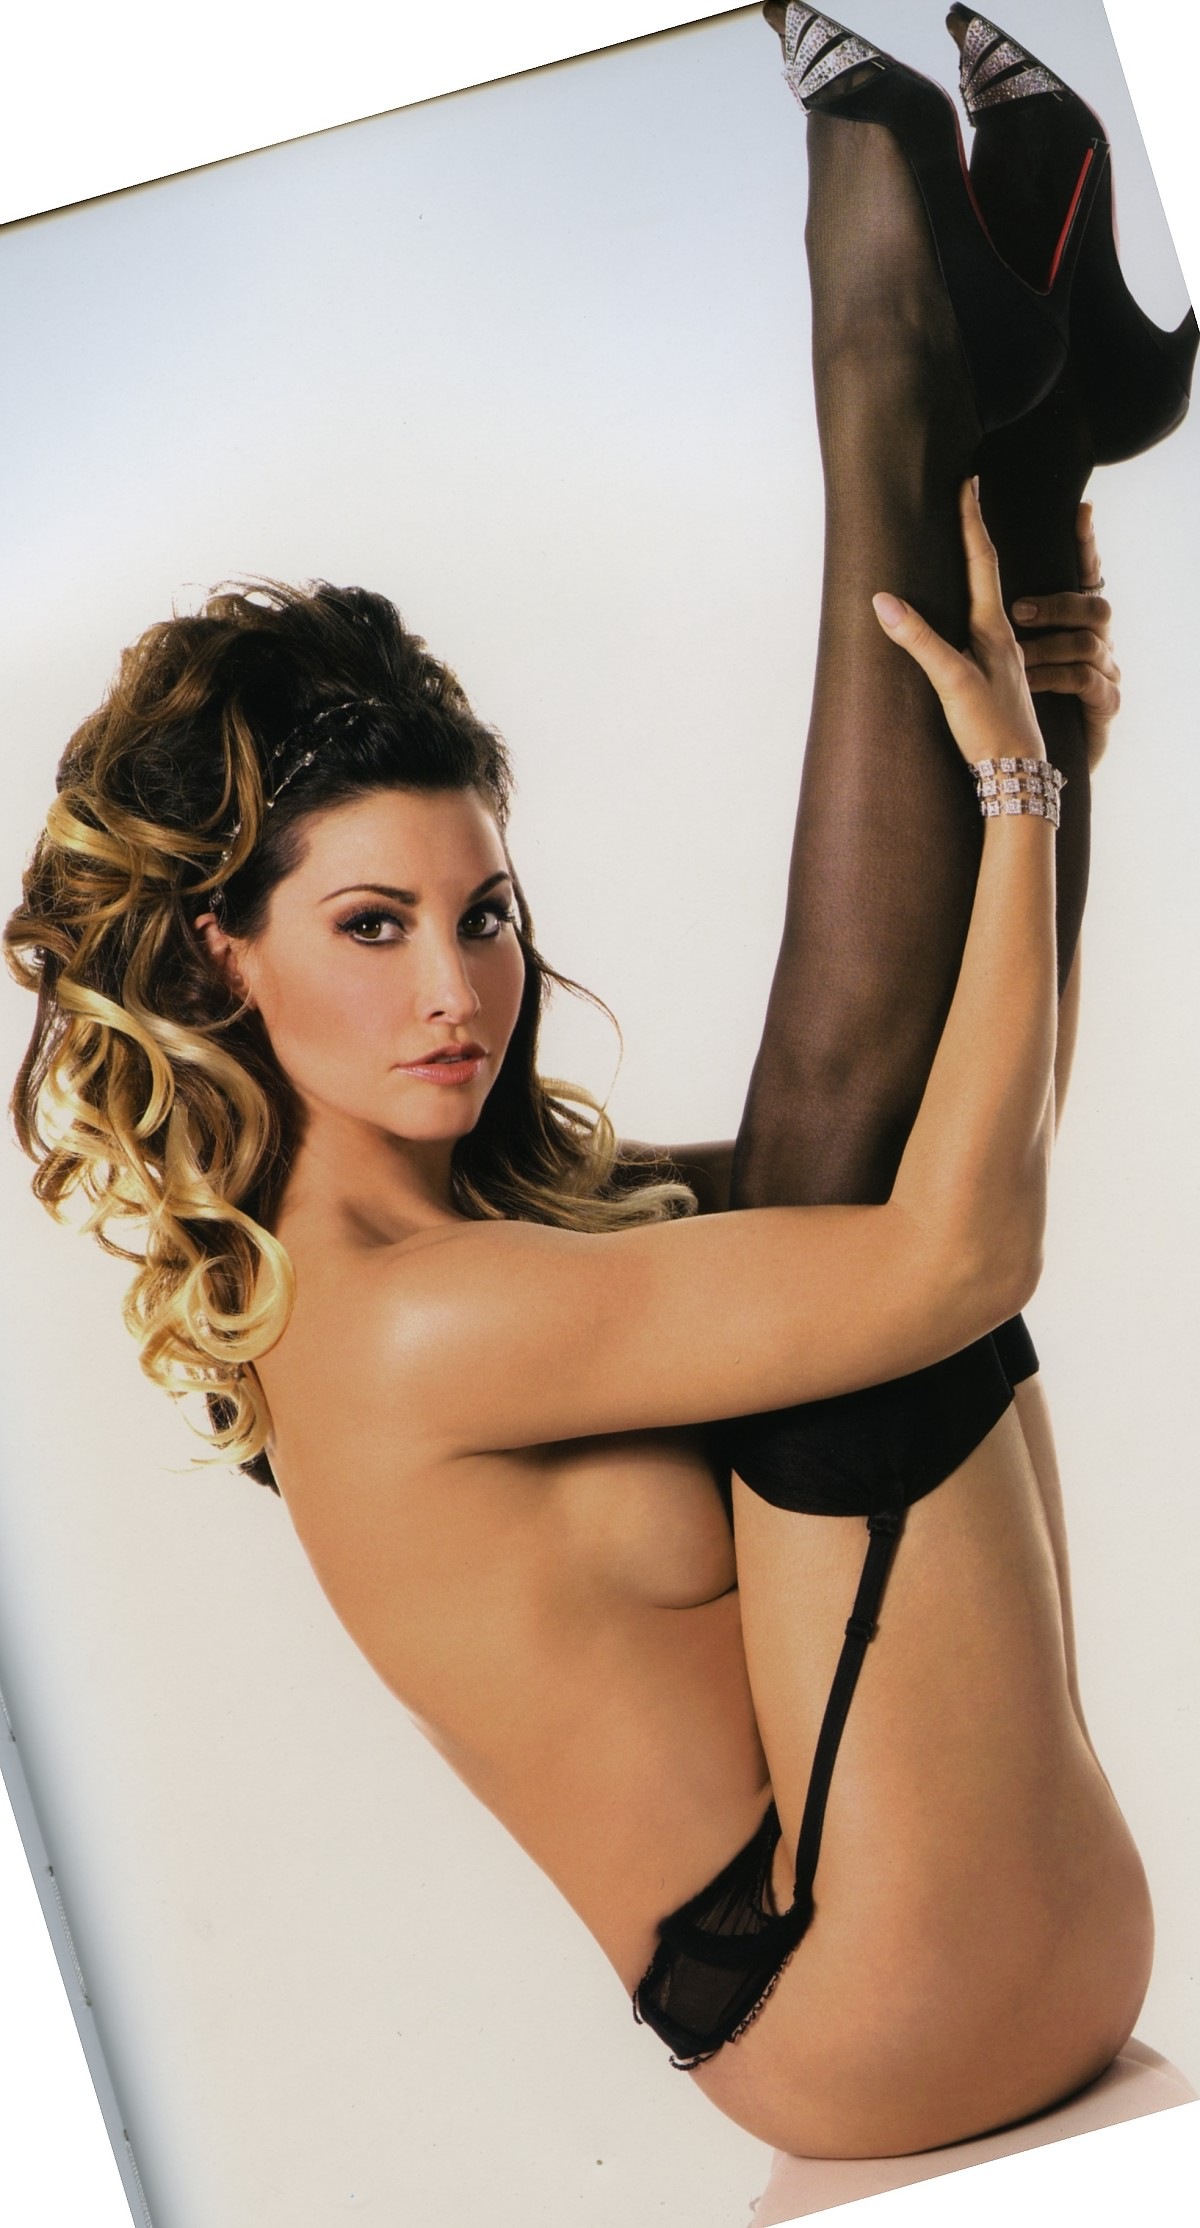 gina gershon Gina Gershon Nude Picture Gallery